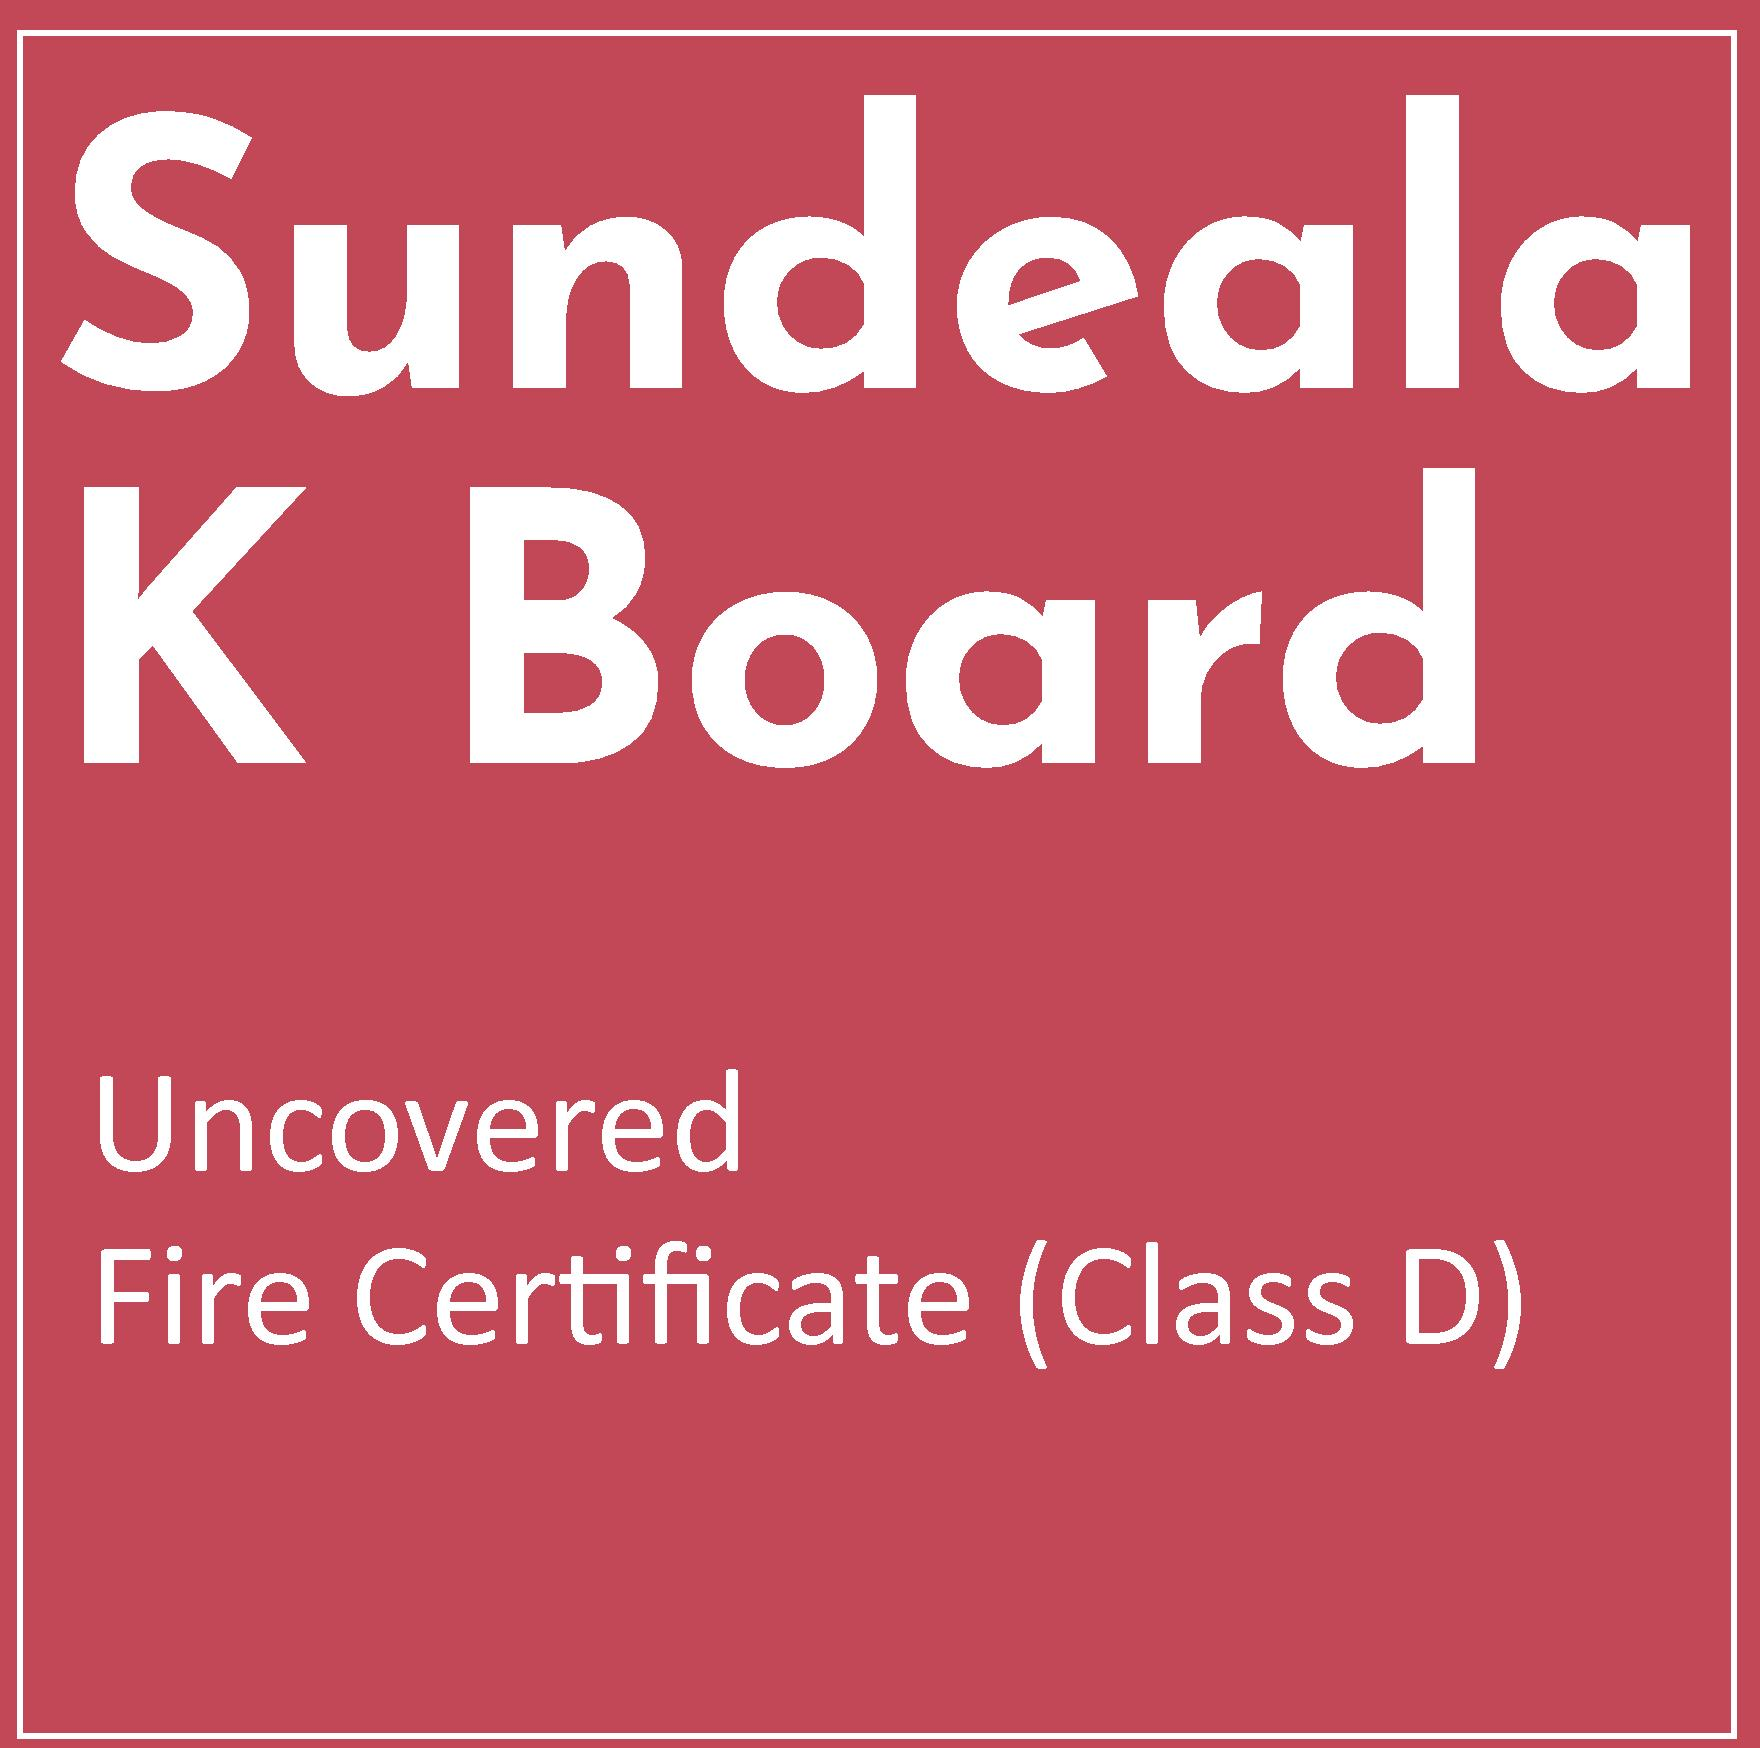 Fire Information for Sundeala K Uncovered Boards